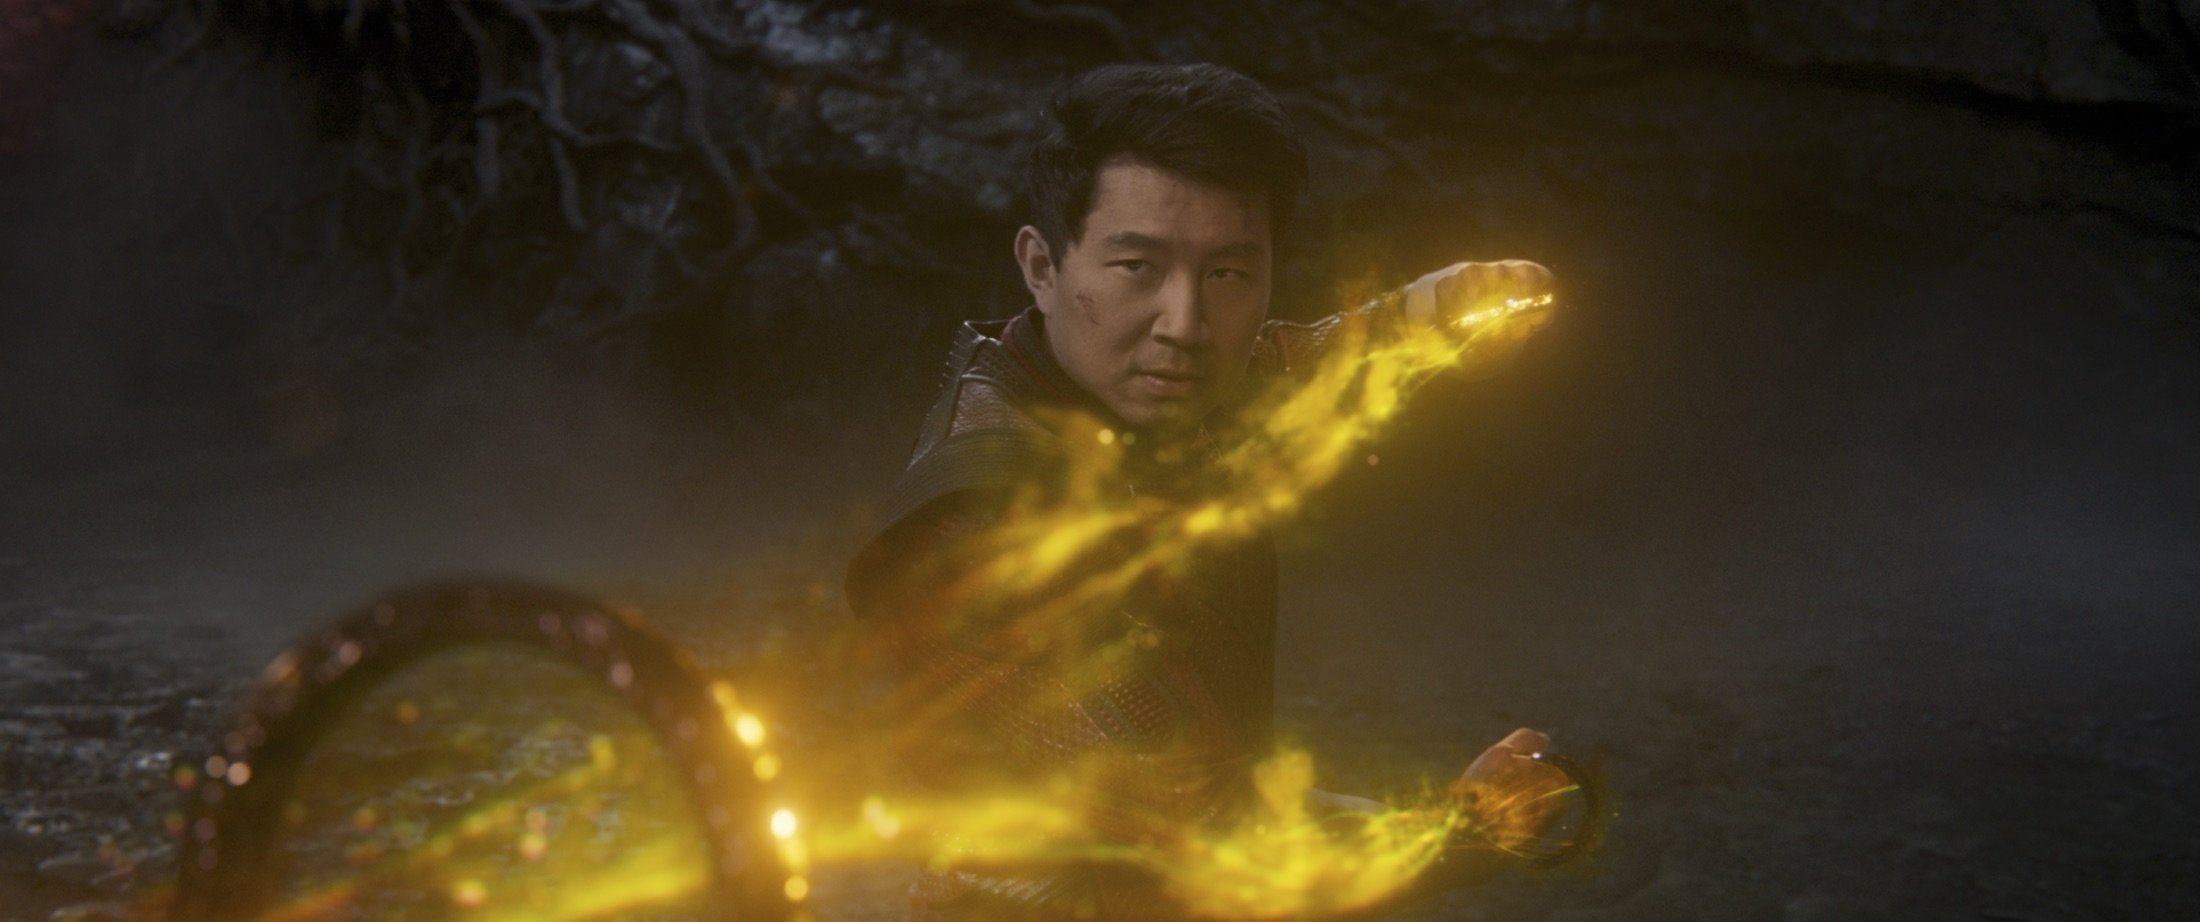 """Simu Liu, in a scene from the film """"Shang-Chi and the Legend of the Ten Rings."""" (Marvel Studios via AP)"""